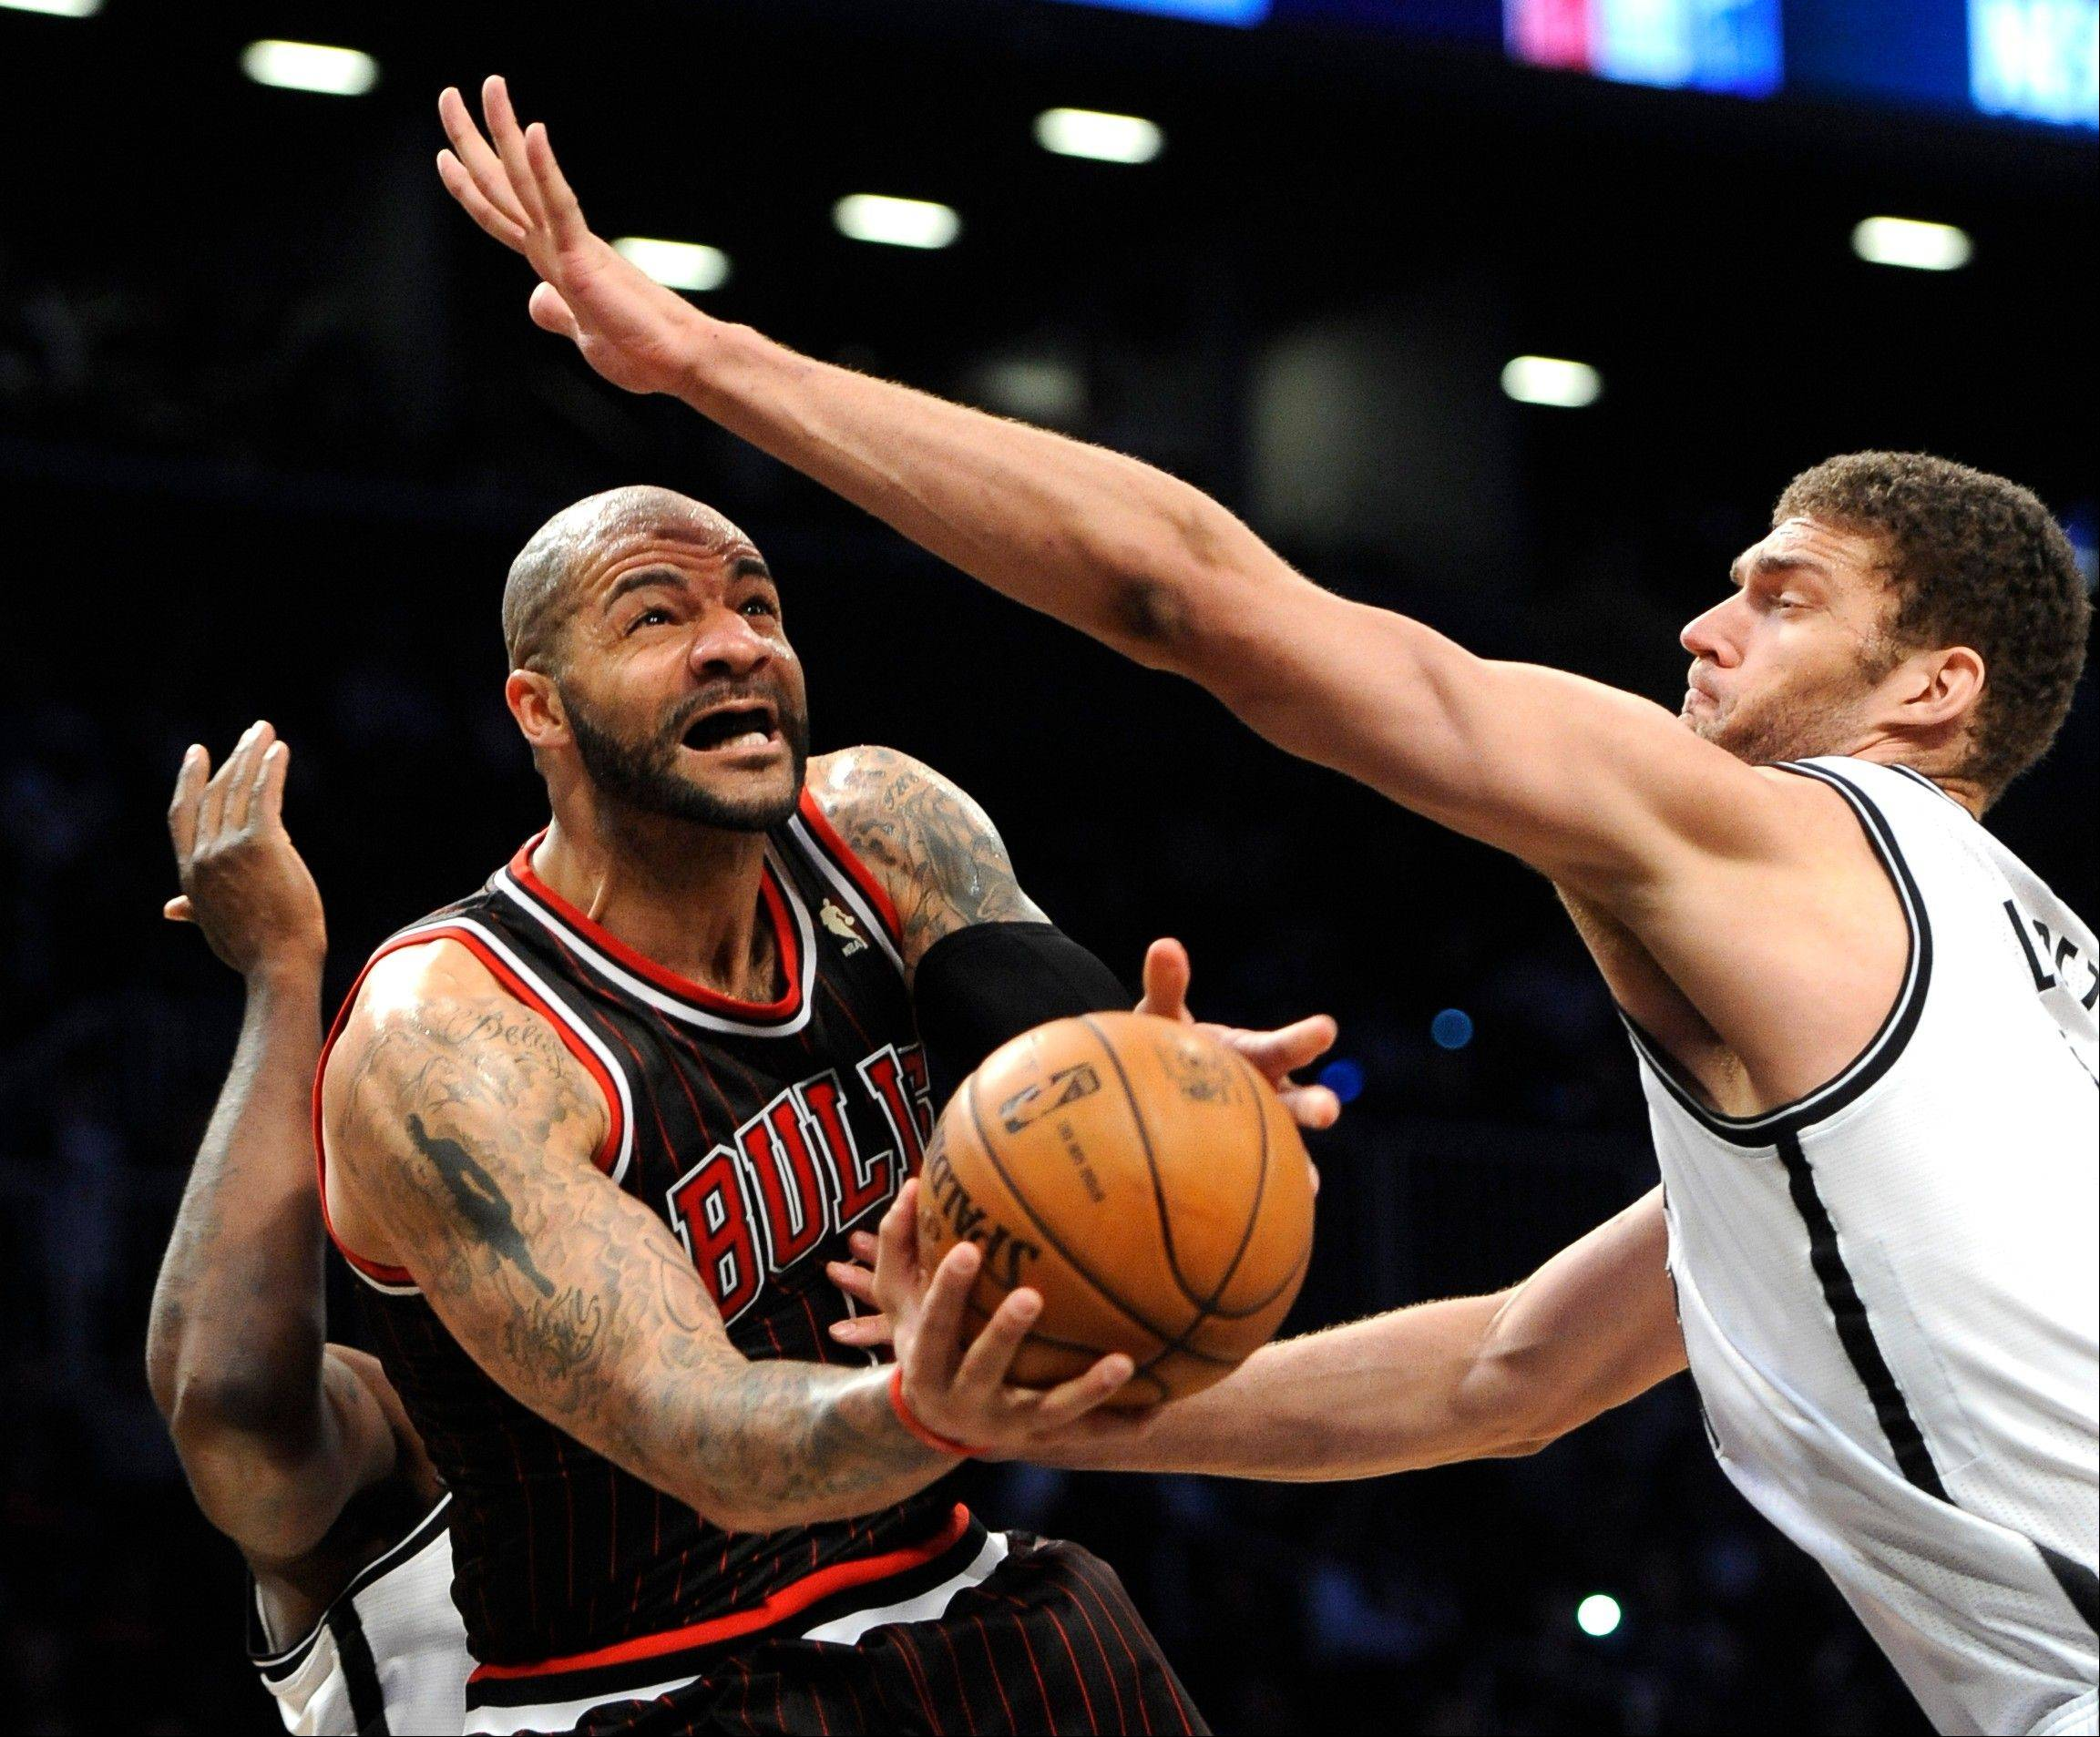 Playoff times for Bulls-Nets series